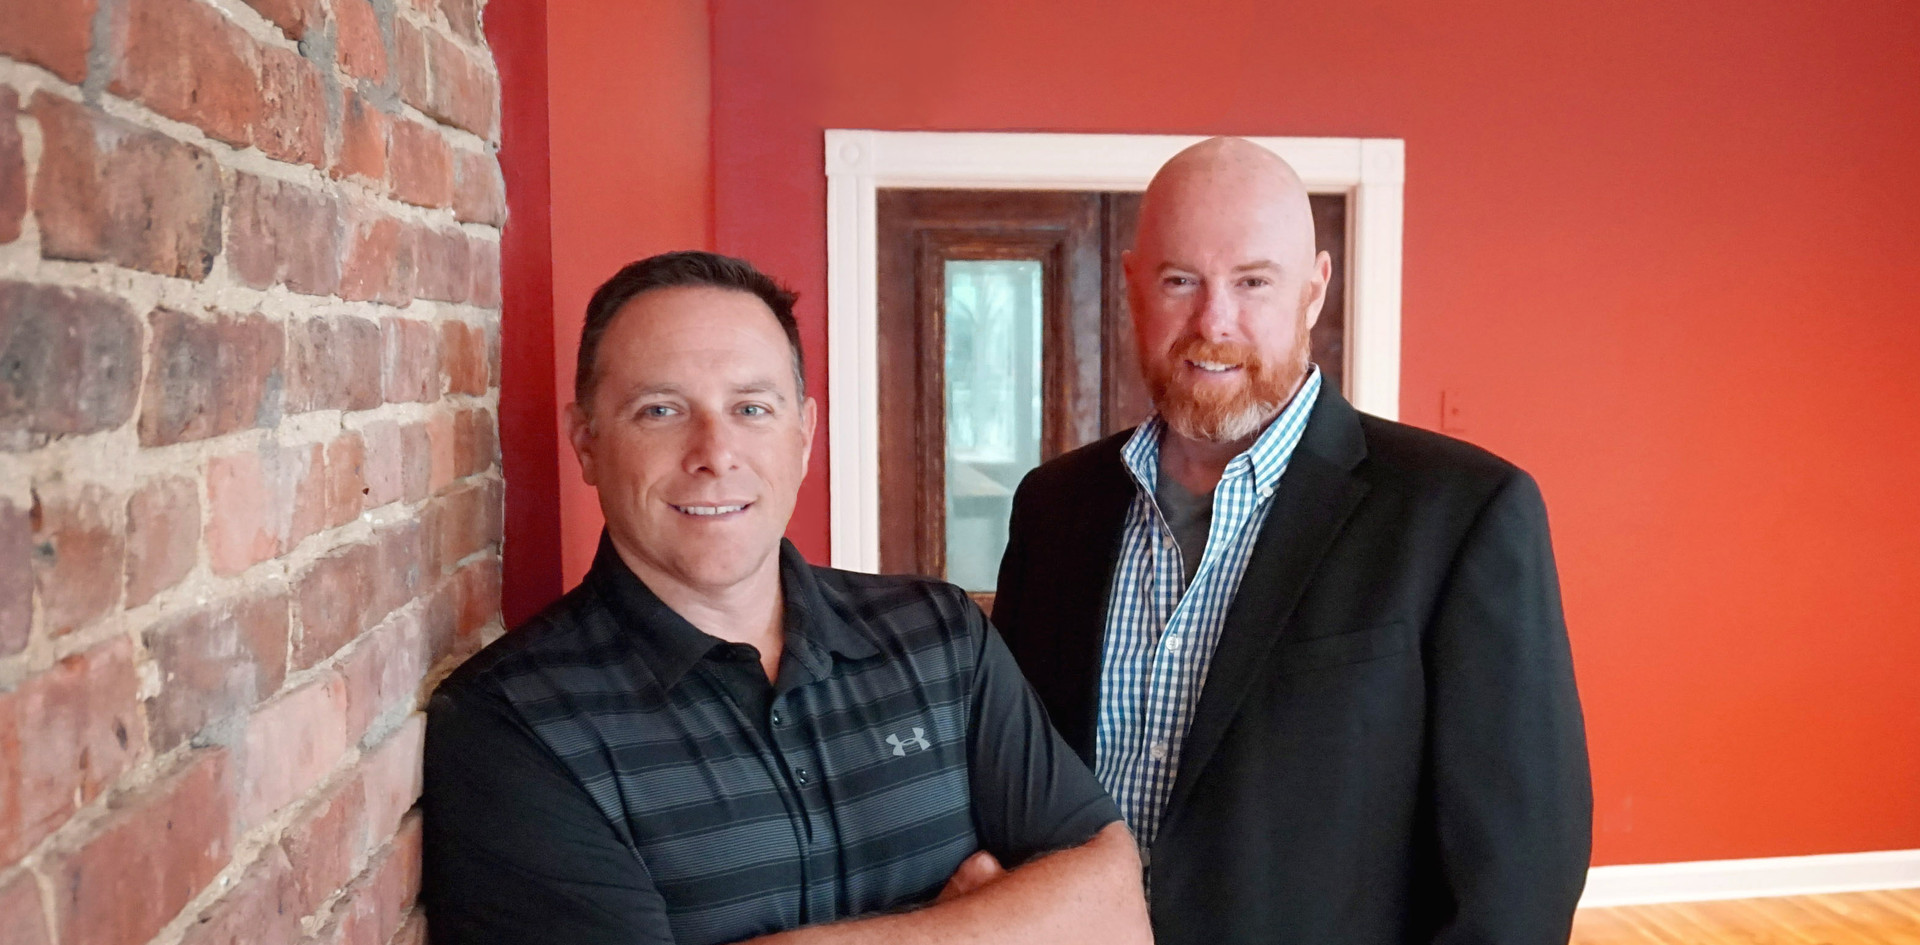 Jeff Kniffin and John Meechan of The Gallery Residential Brokerage